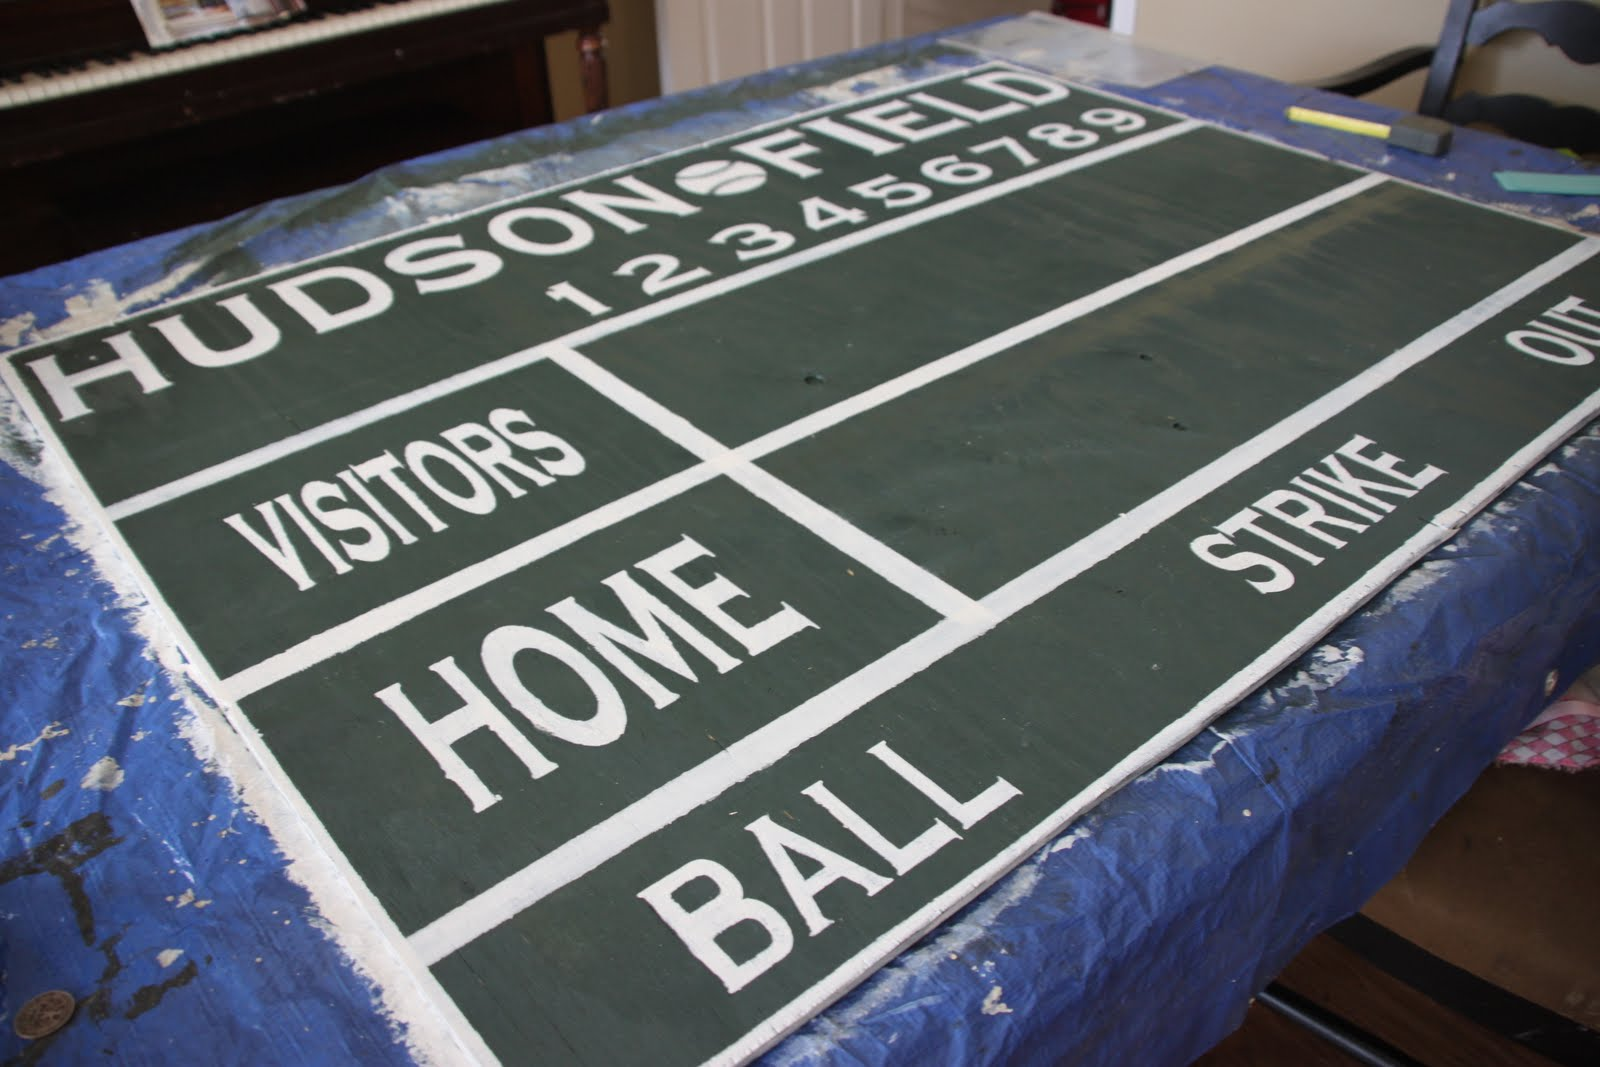 That Village House Baseball Scoreboard